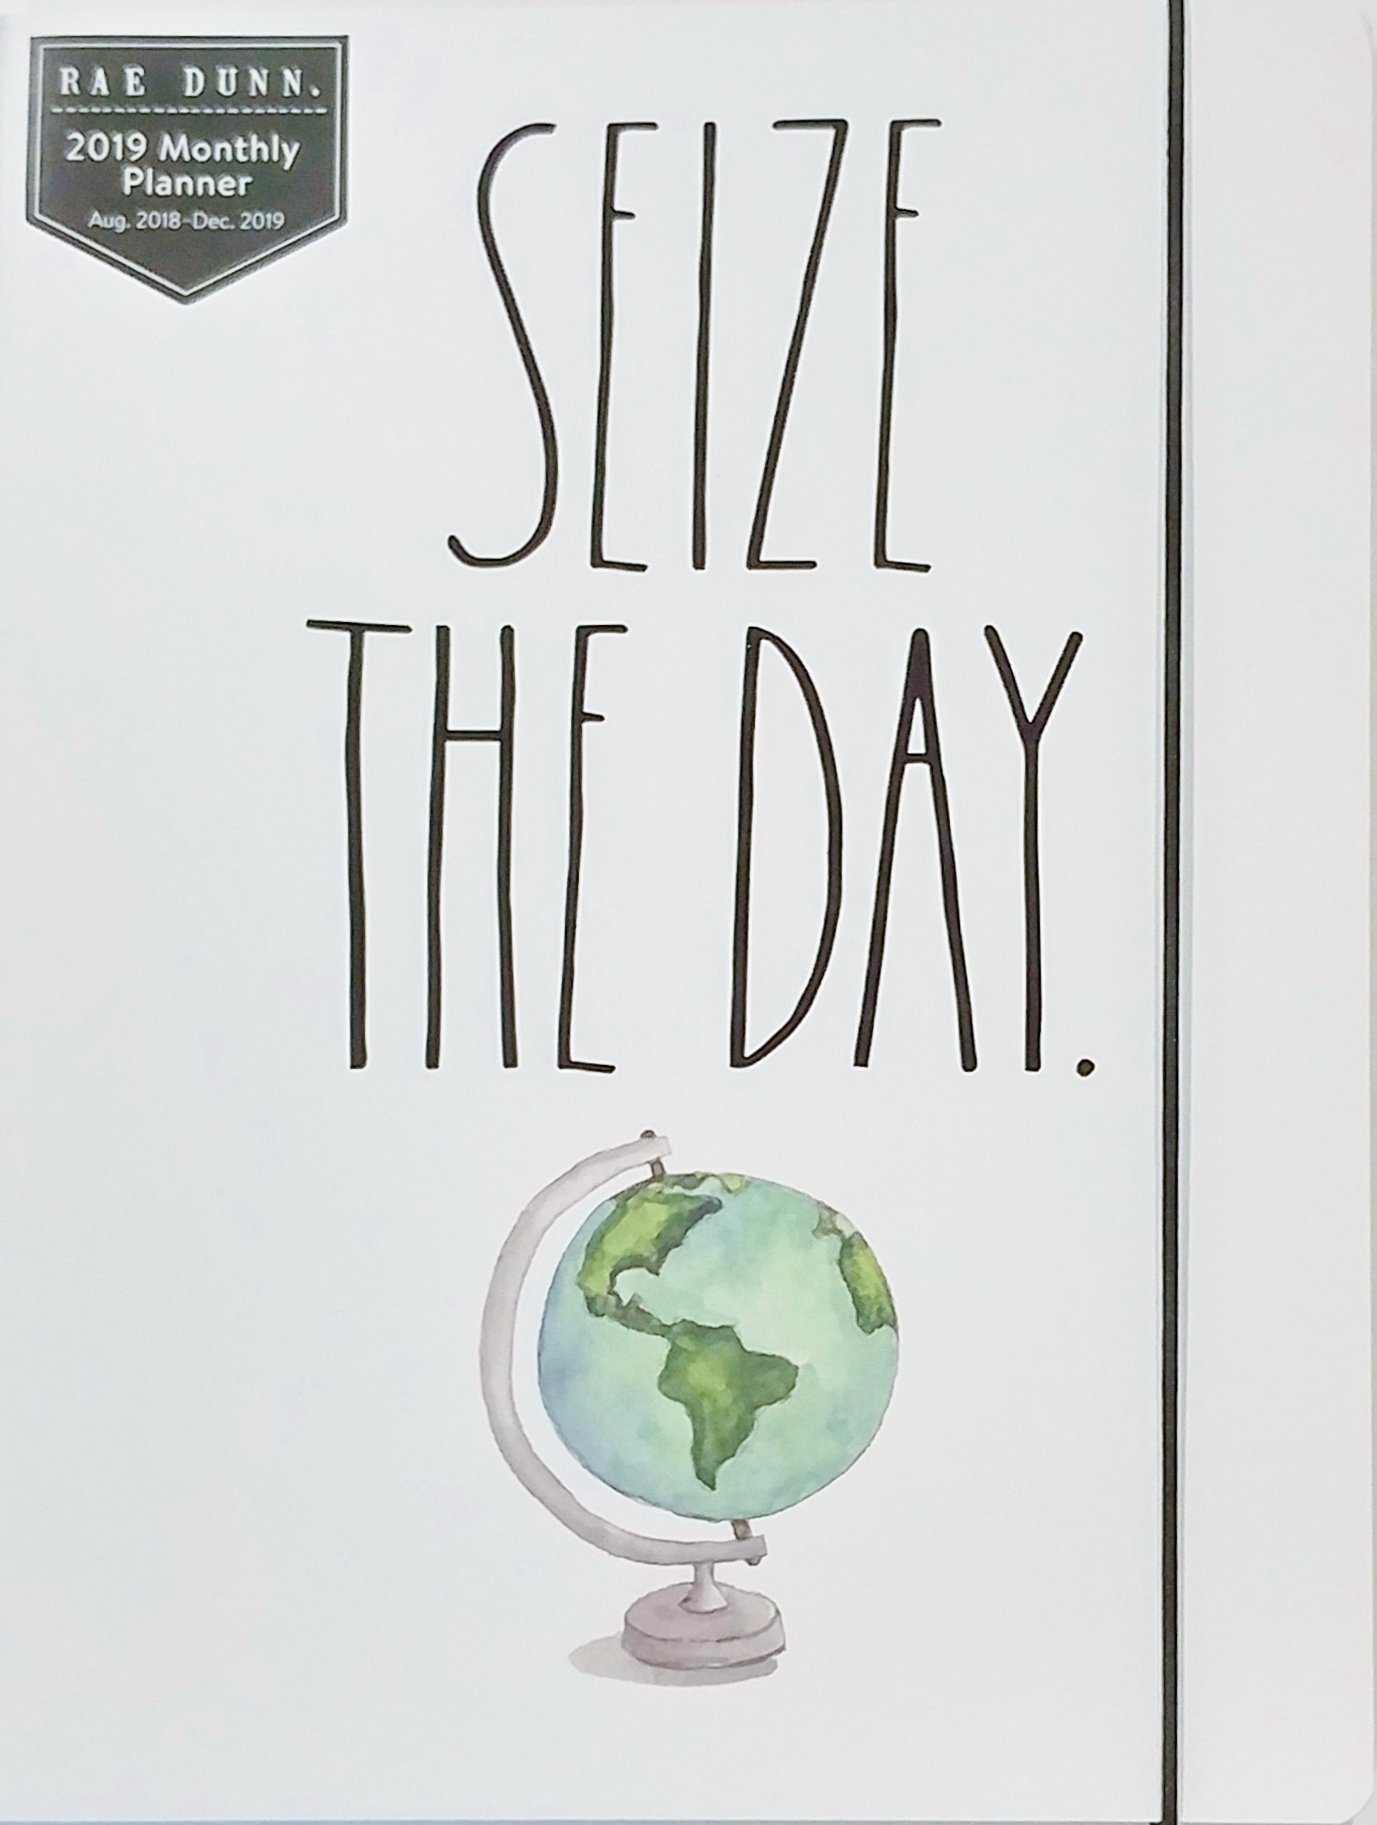 Rae Dunn - Seize The Day - 2019 Monthly Planner Calendar (17 Months Aug 2018-Dec 2019) To Do/Notes